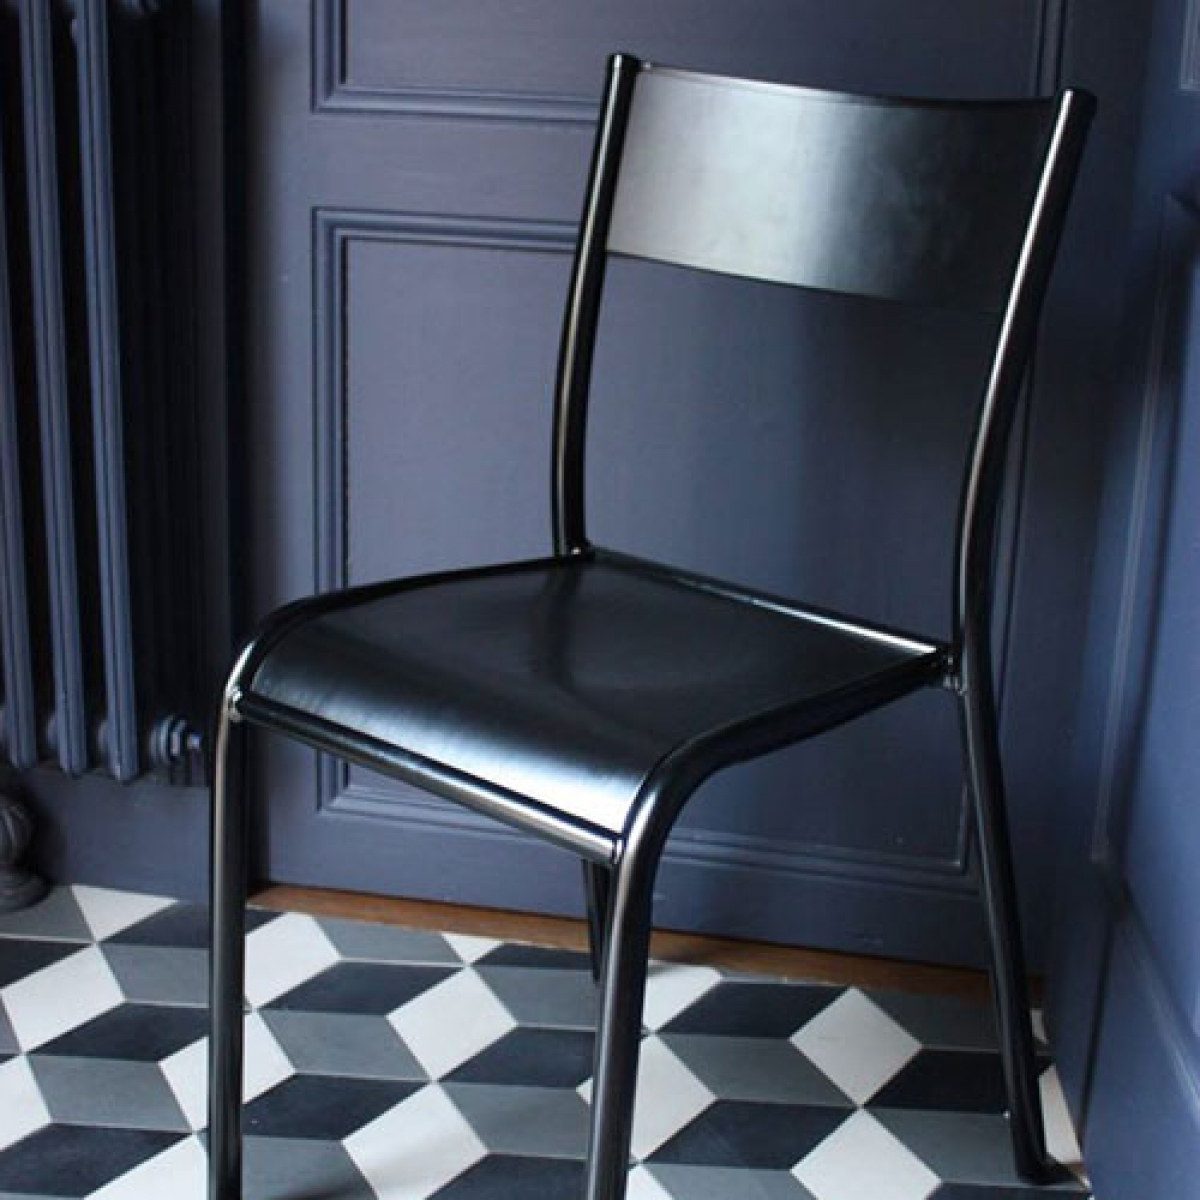 Original Stuhl La Chaise 510 Farbe Schwarz Made in France